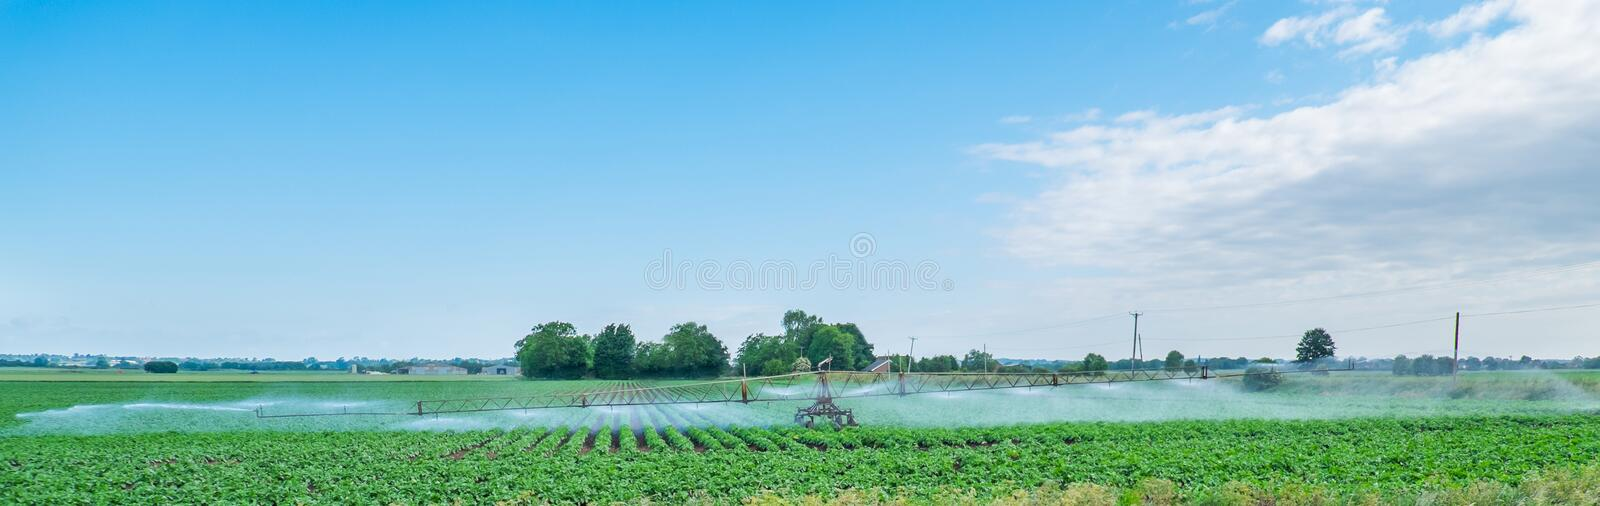 Irrigating potatoes. Panoramic image of a field of potatoes being watered in a dry spell stock photography